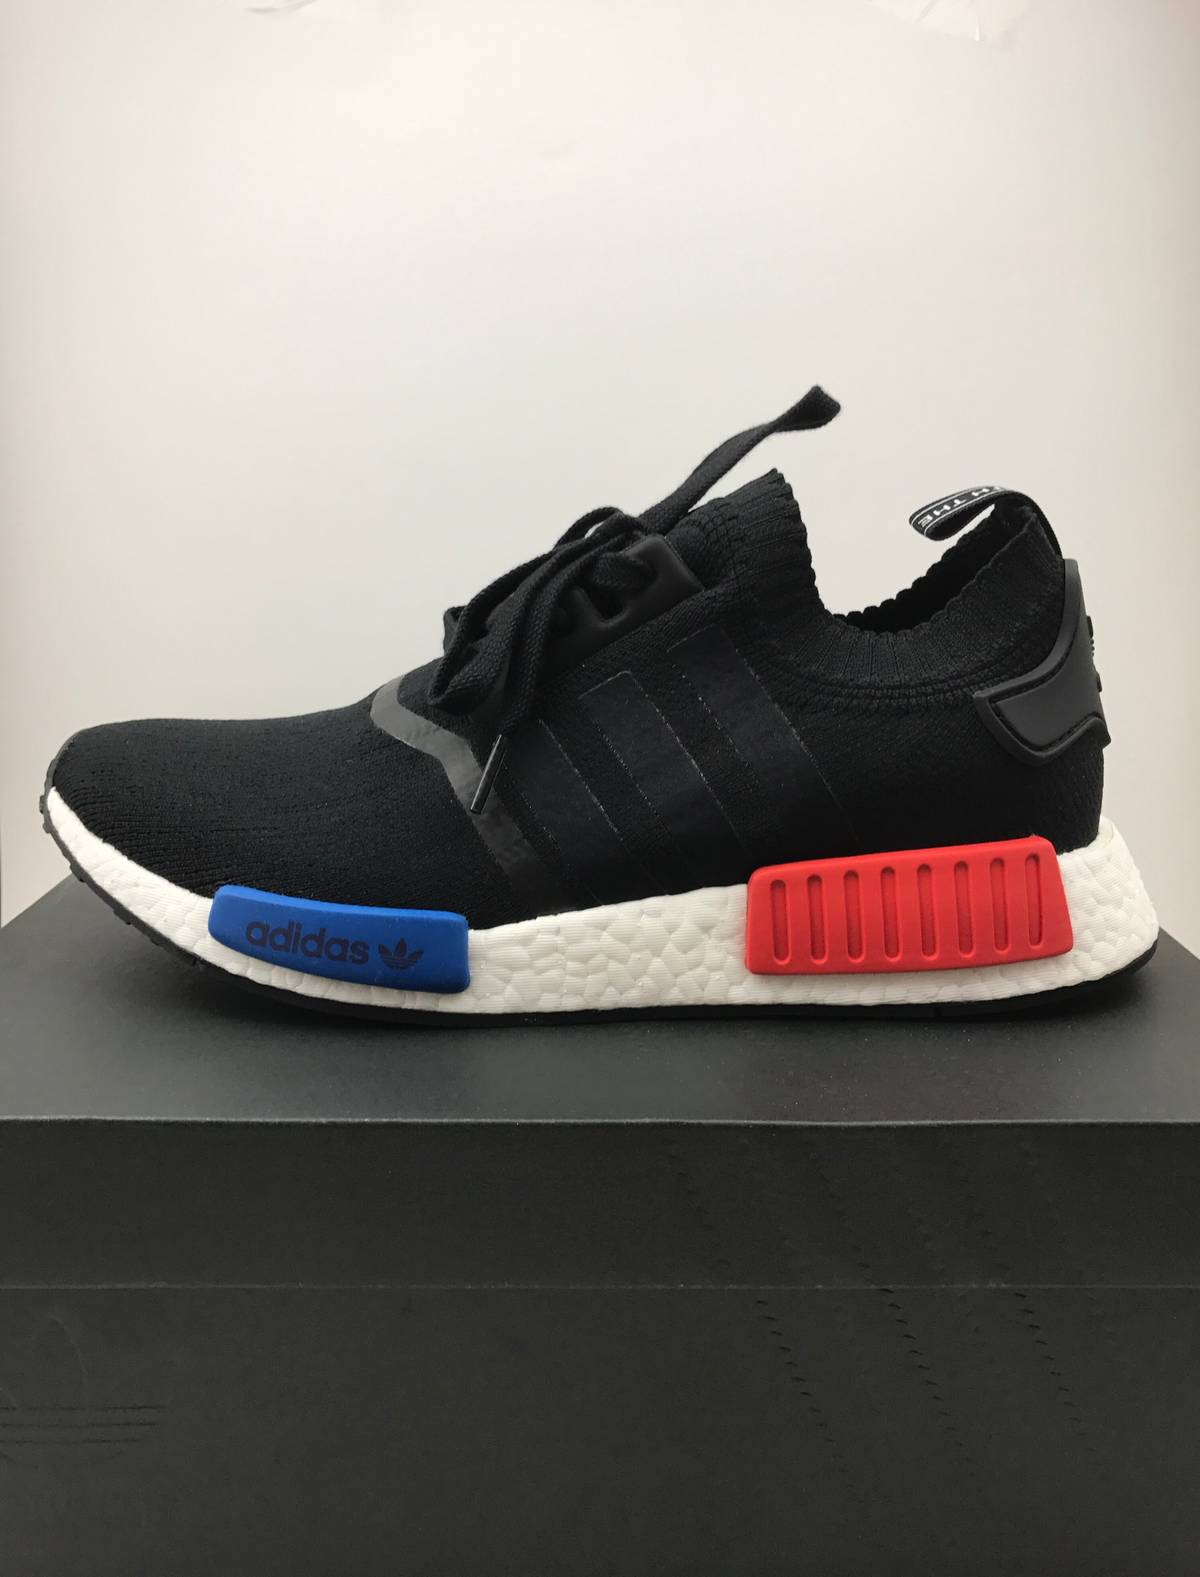 adidas NMD R1 PK Primeknit Black Monochrome on feet